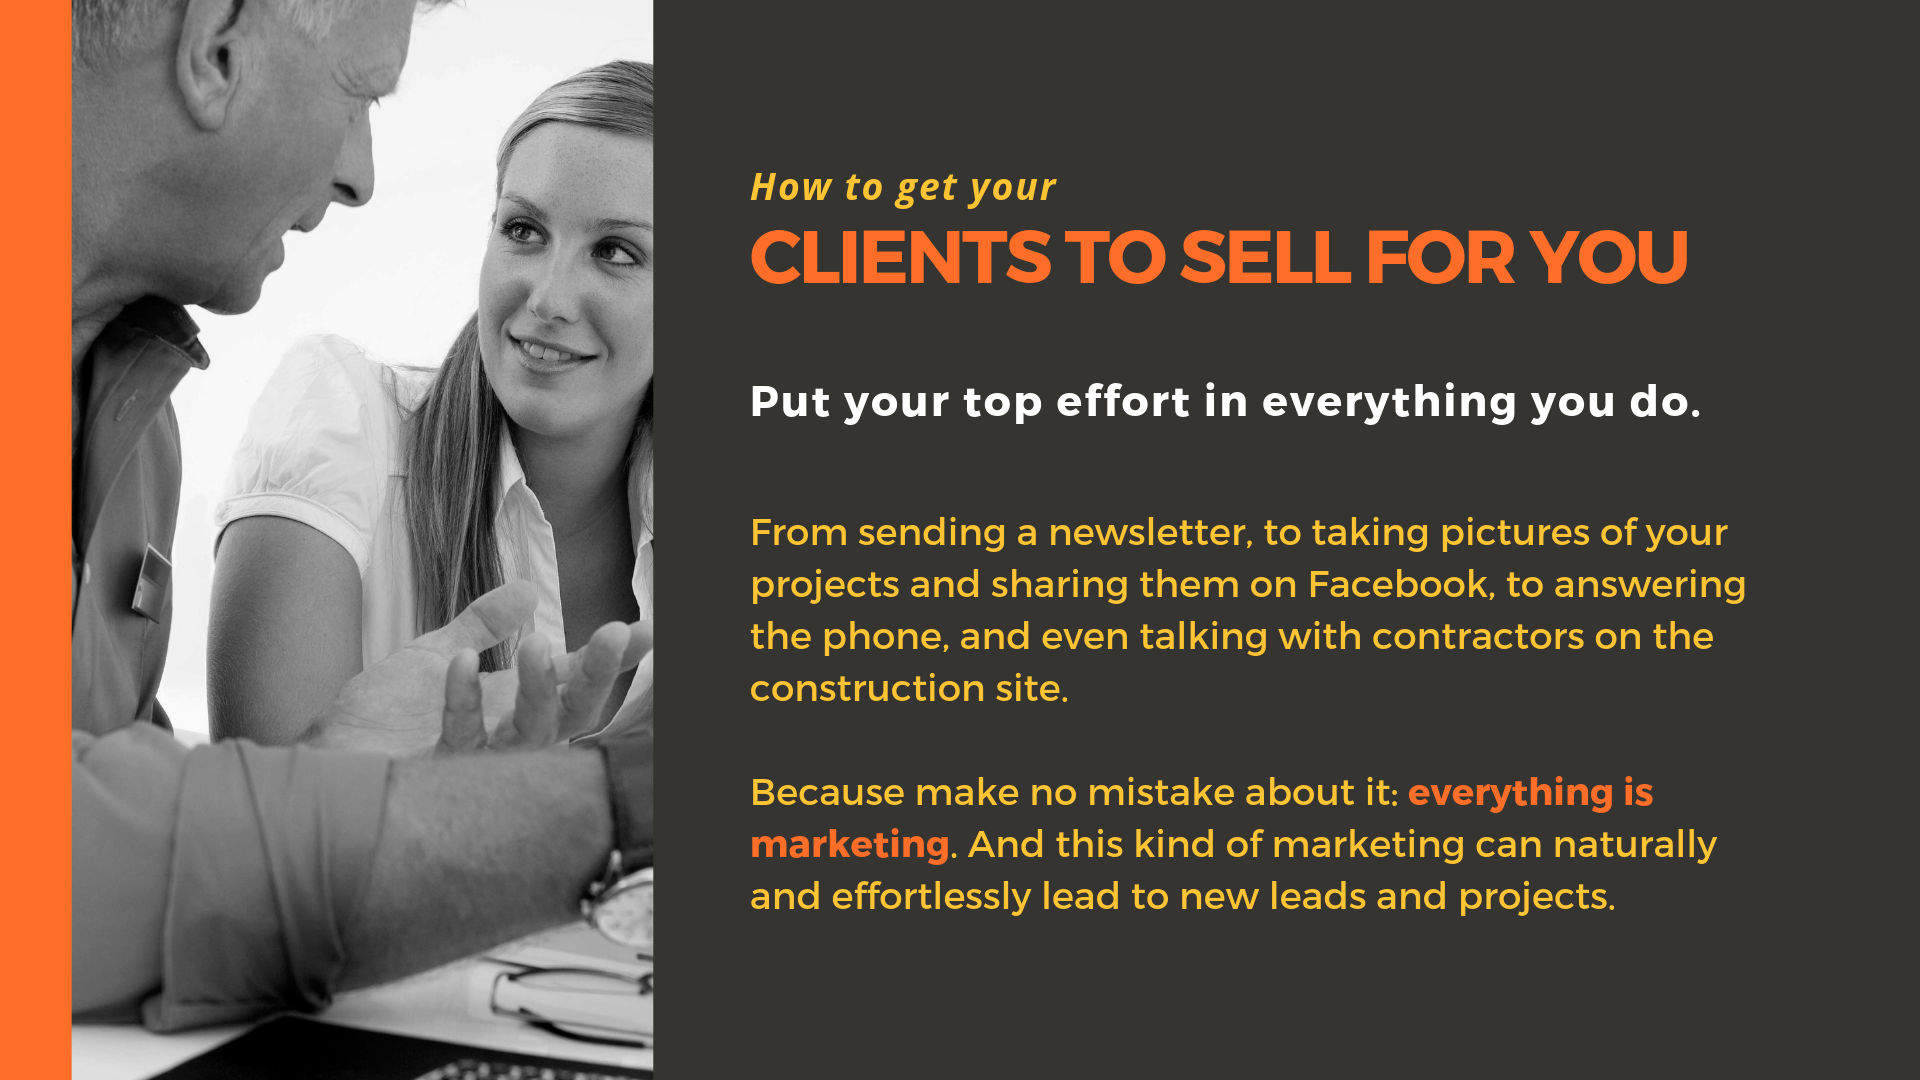 archisnapper_howtogetclientstosellforyou_6socialproofmarketingstrategies